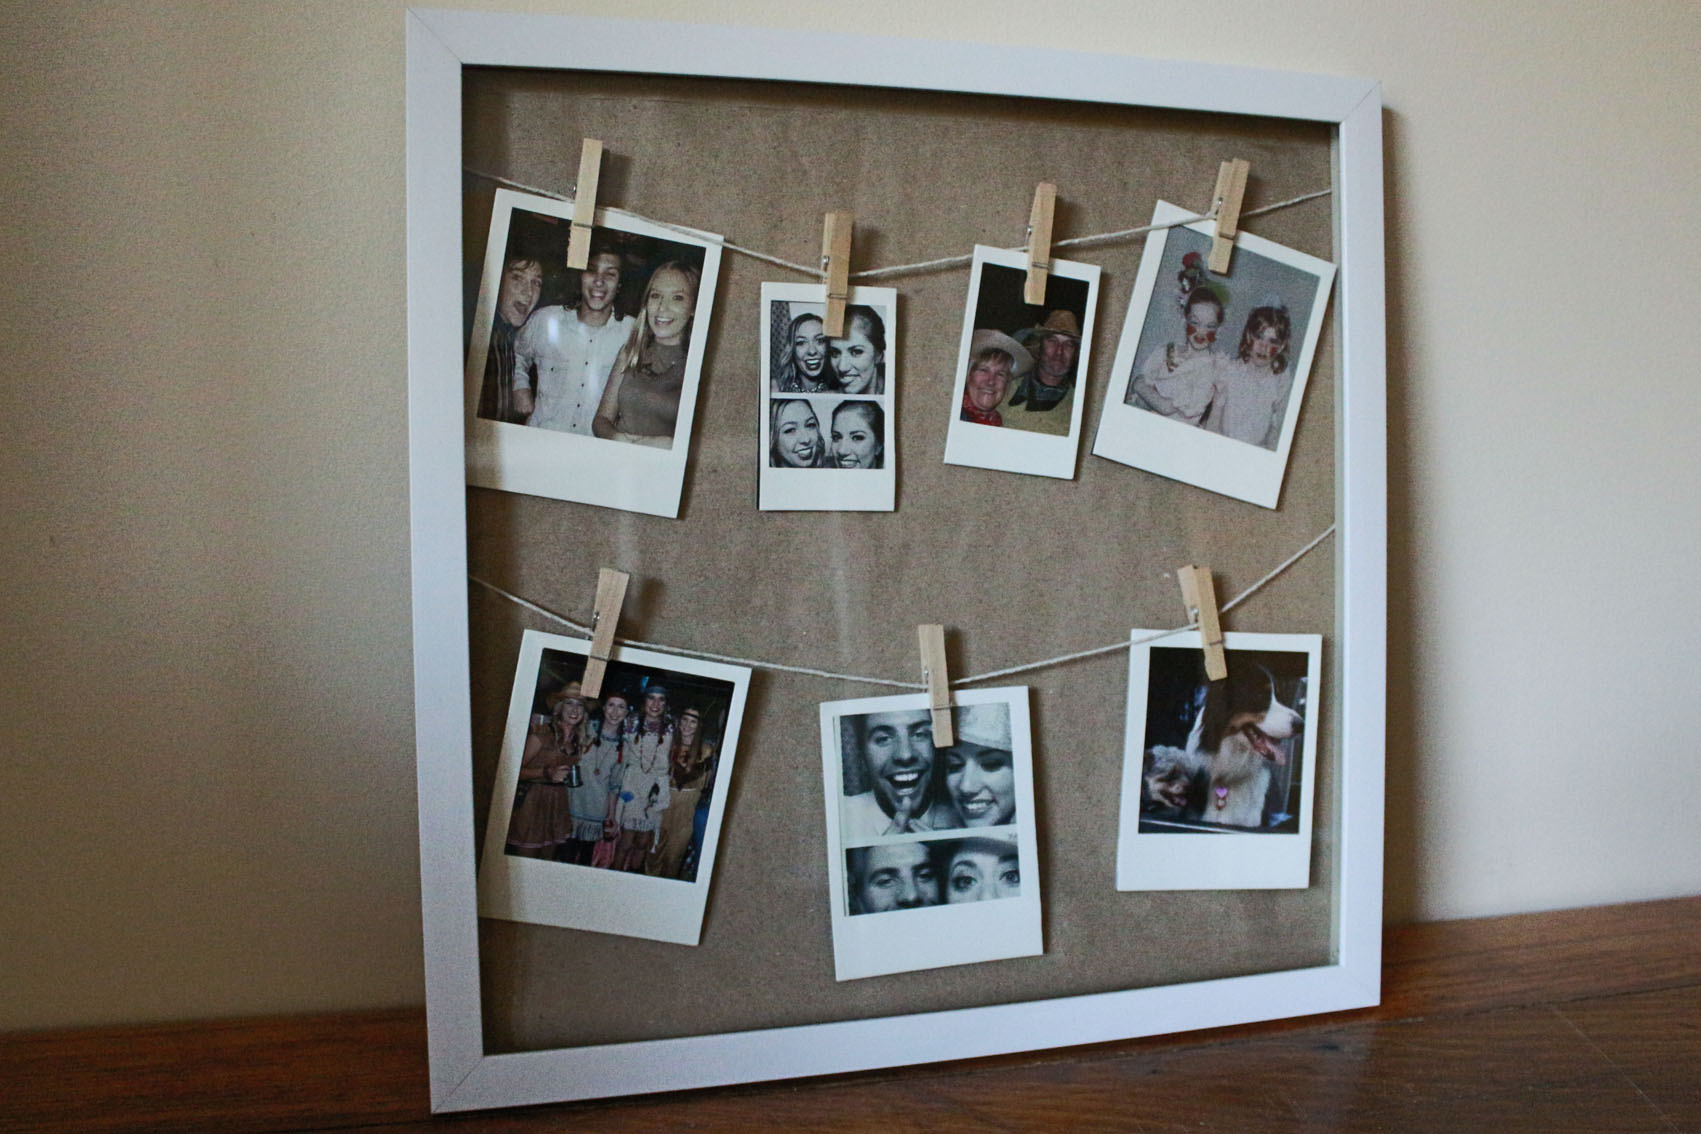 3d frame polaroid templates mini pegs from kmart twine kraft paper blue tack 9cent photos from officeworks